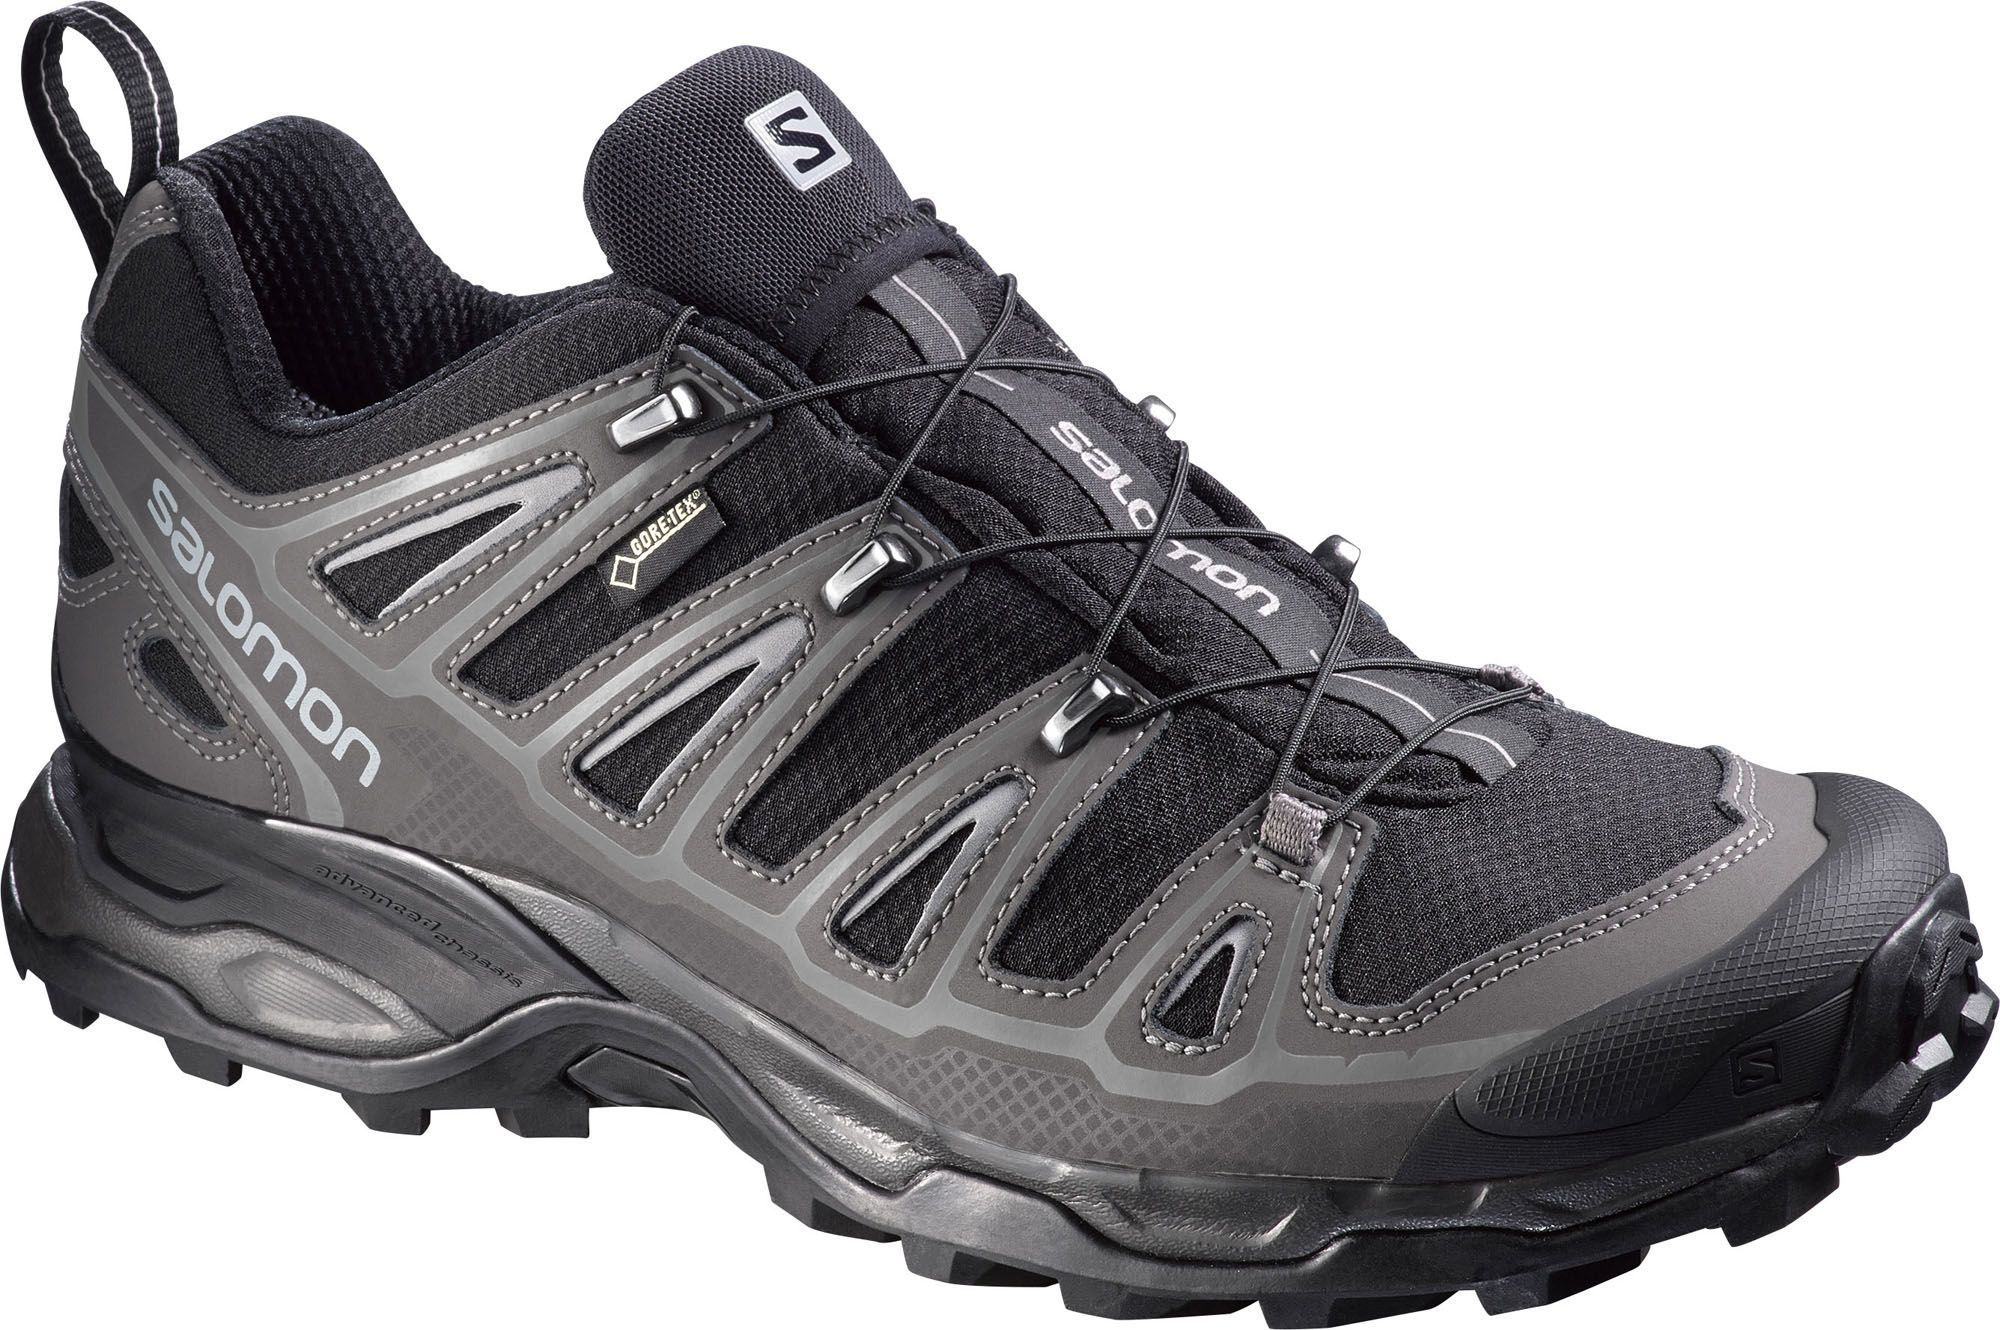 c715ef41c12 Salomon Men's X Ultra 2 GORE-TEX Hiking Shoes in 2019 | Products ...